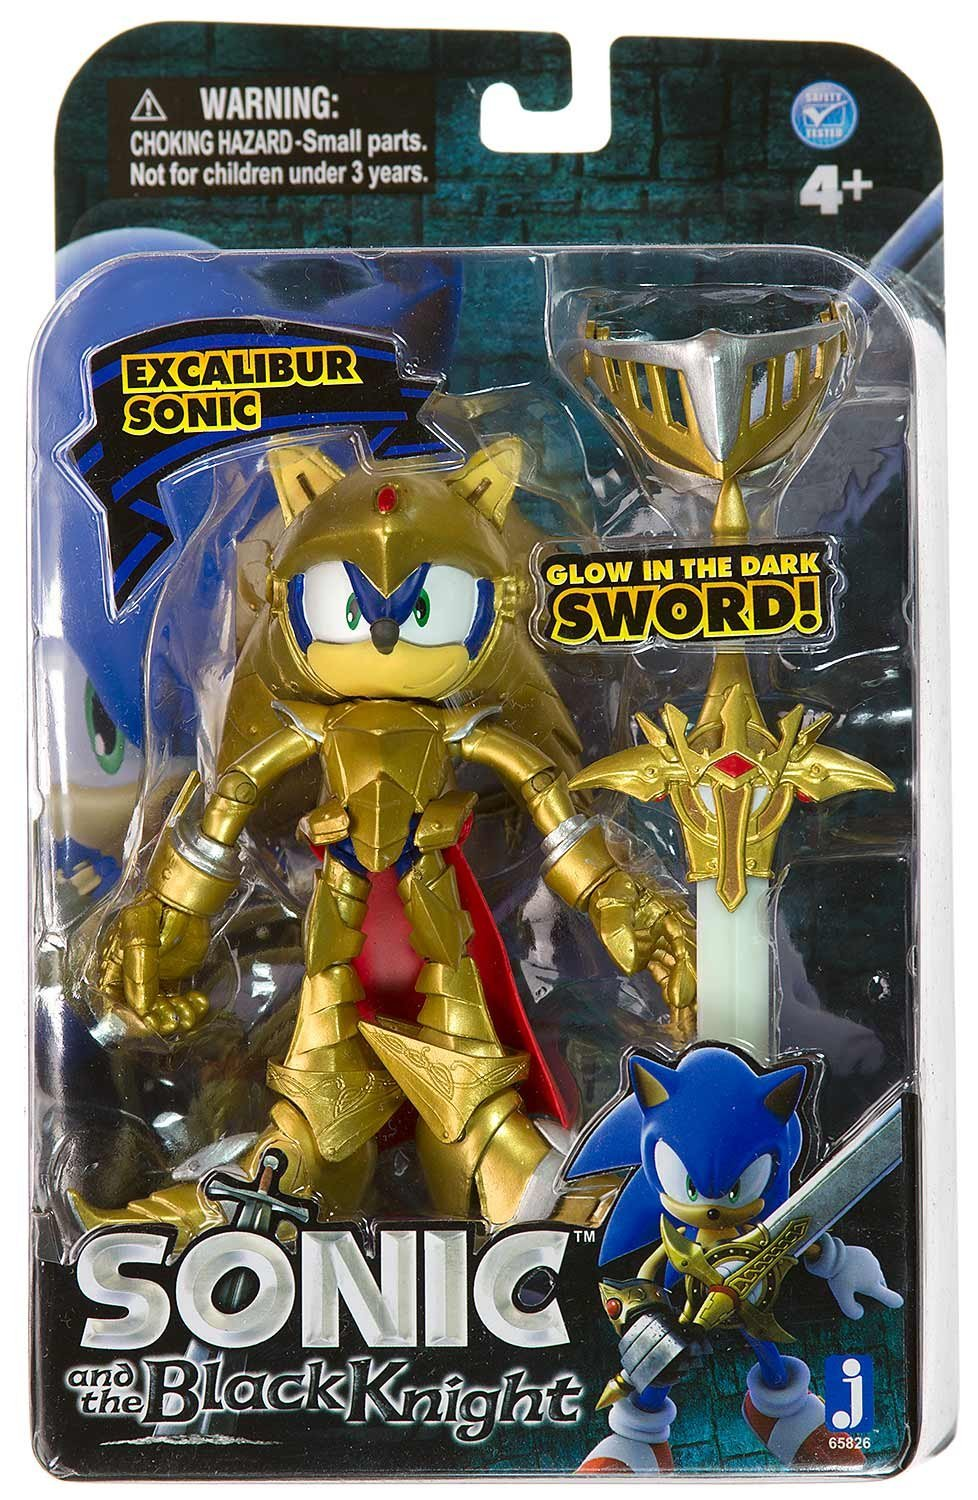 brand new excalibur sonic figure sonic and the black